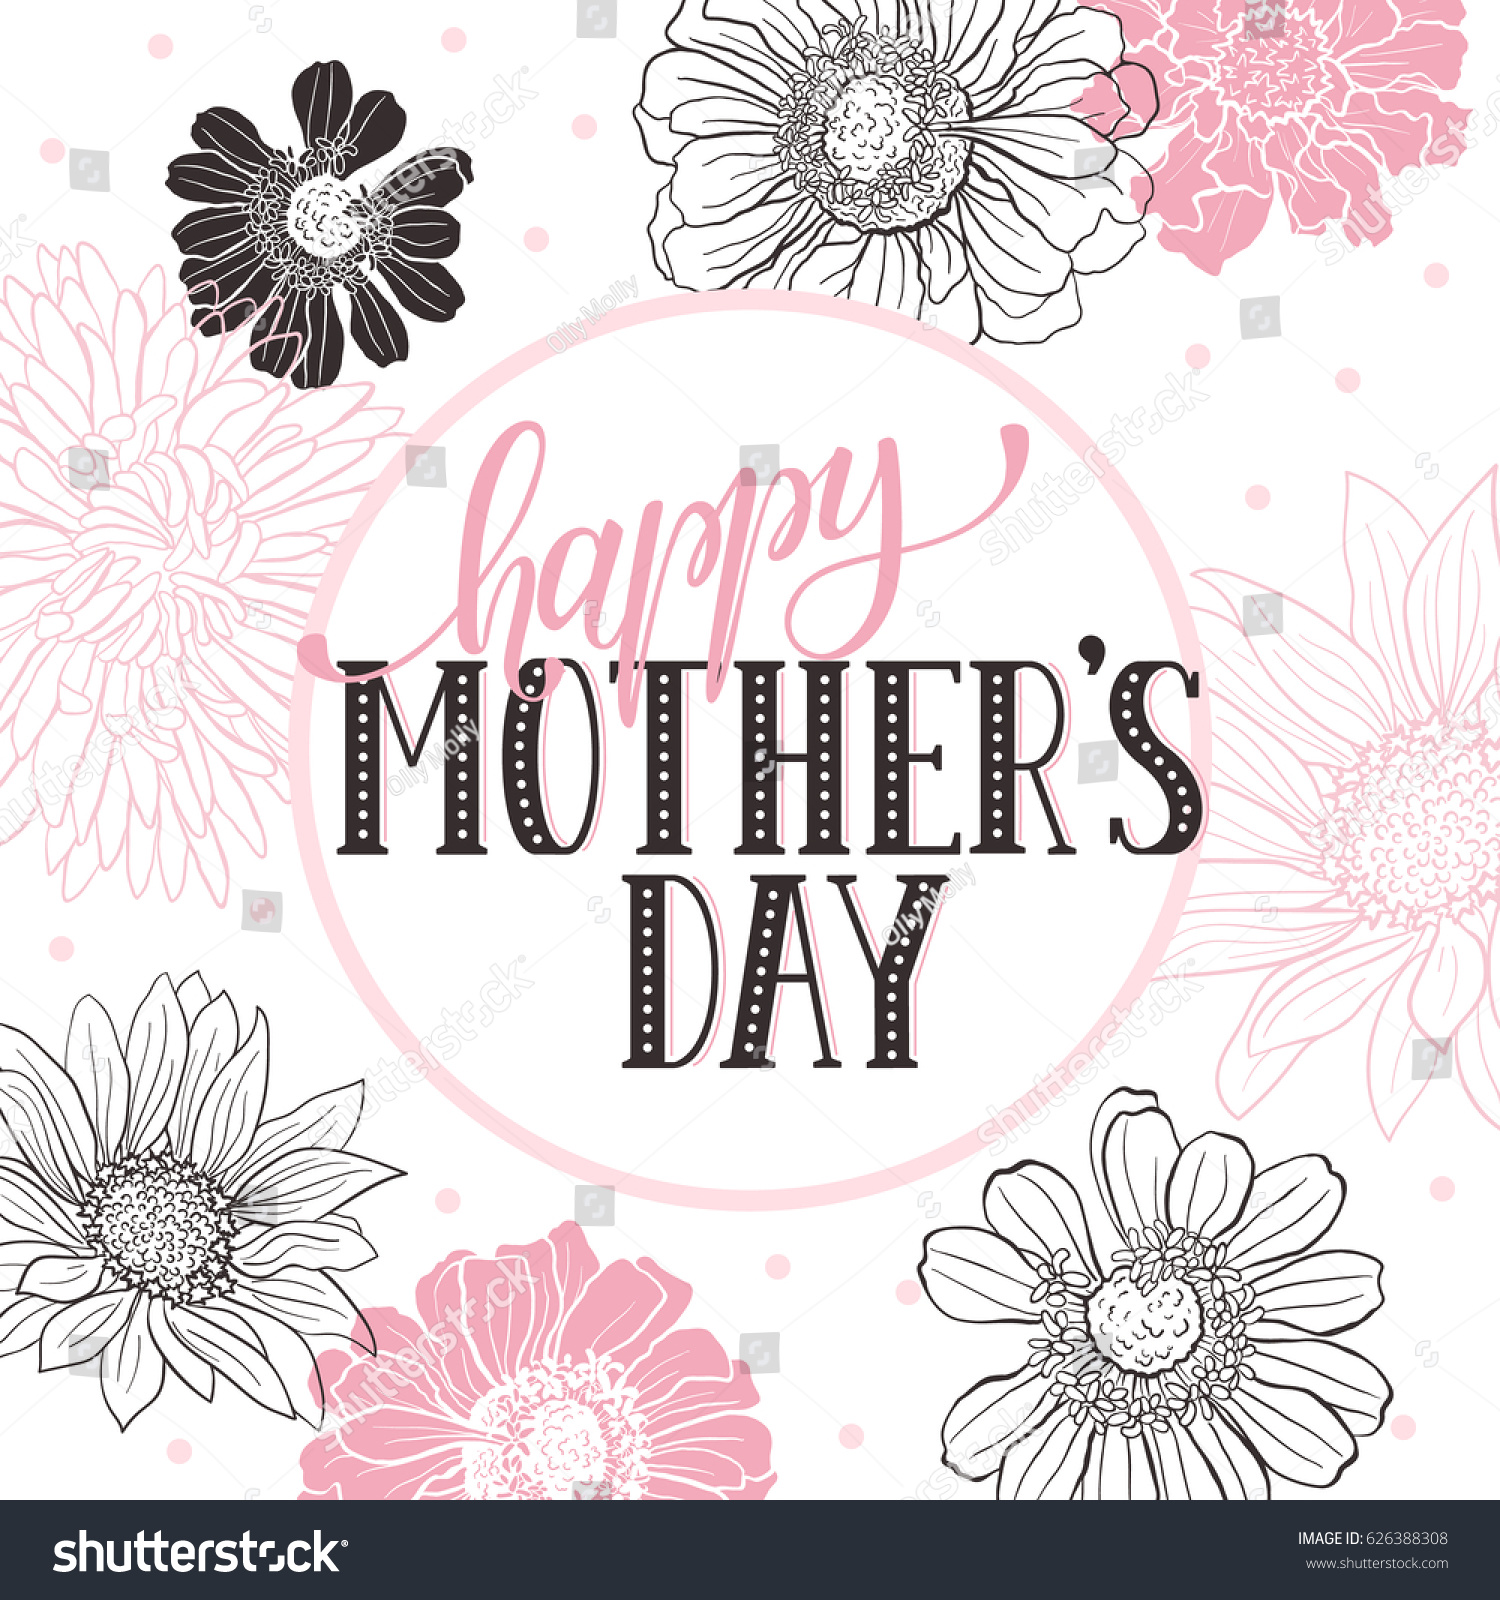 Mother day greeting card happy mothers stock vector 626388308 mother day greeting card happy mothers day wording with flowers outlines on white background kristyandbryce Image collections